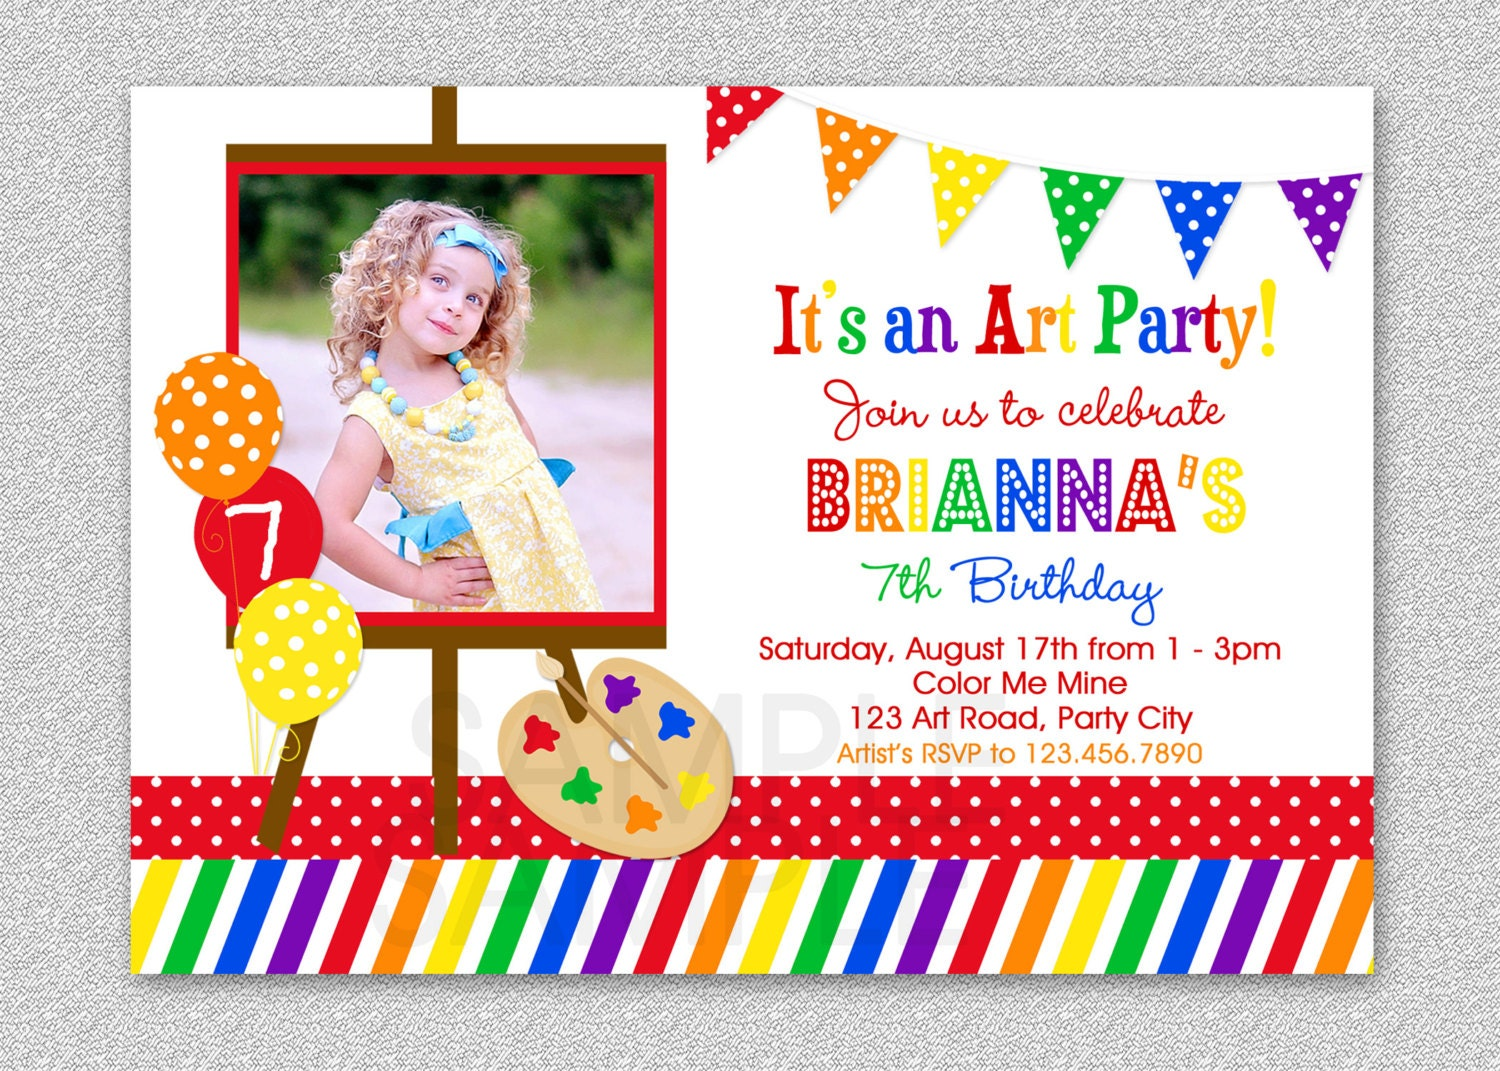 Pottery Painting Birthday Party Invitations as luxury invitations ideas